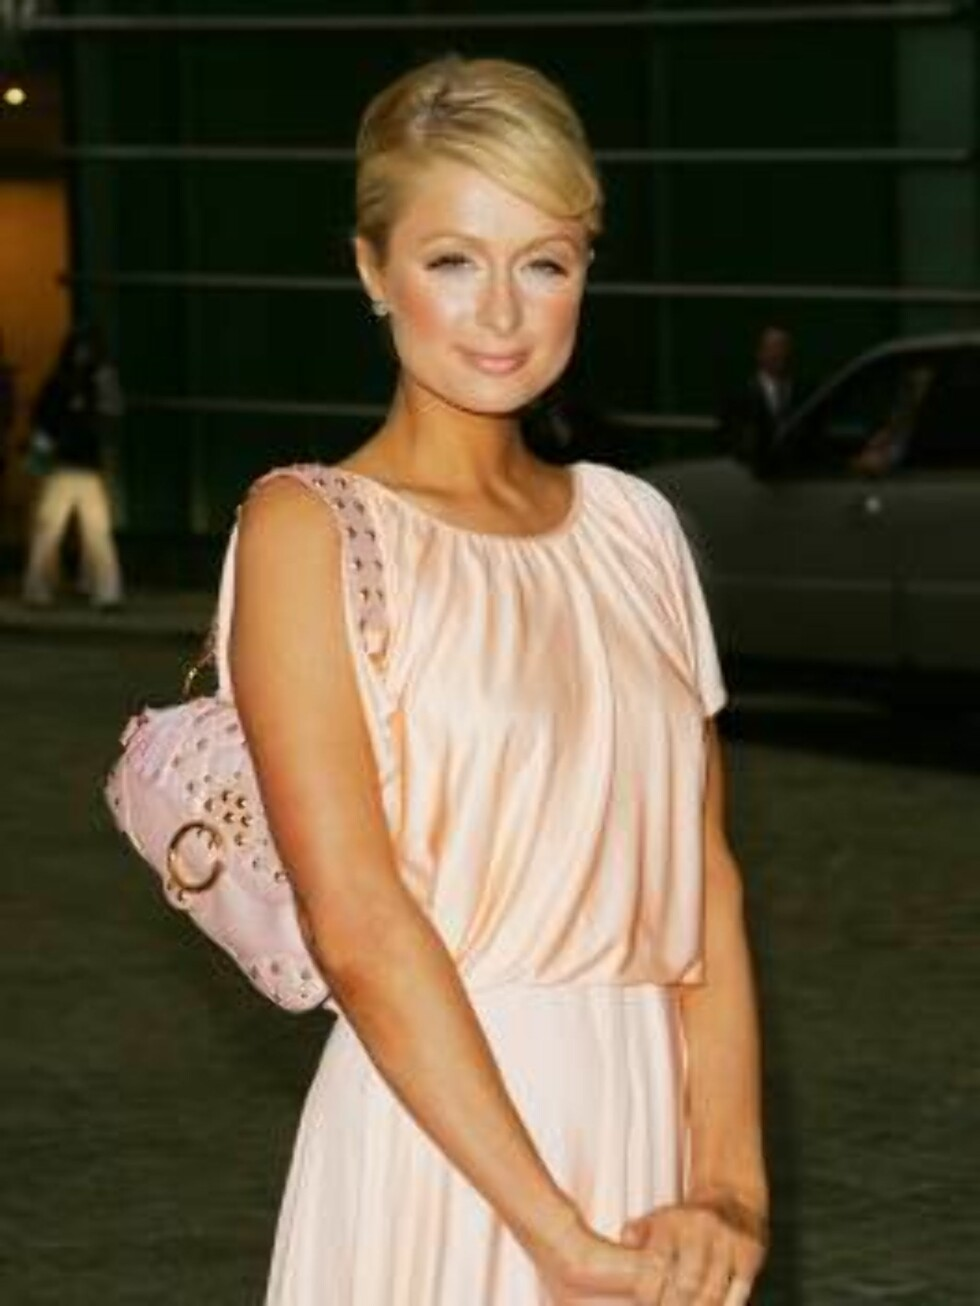 Paris Hilton arrives at the private party thrown by her parents Rick and Kathy Hilton to celebrate Pariss new fragrance, Wednesday, June 14, 2006 in New York. (AP Photo/Dima Gavrysh) Foto: AP/Scanpix